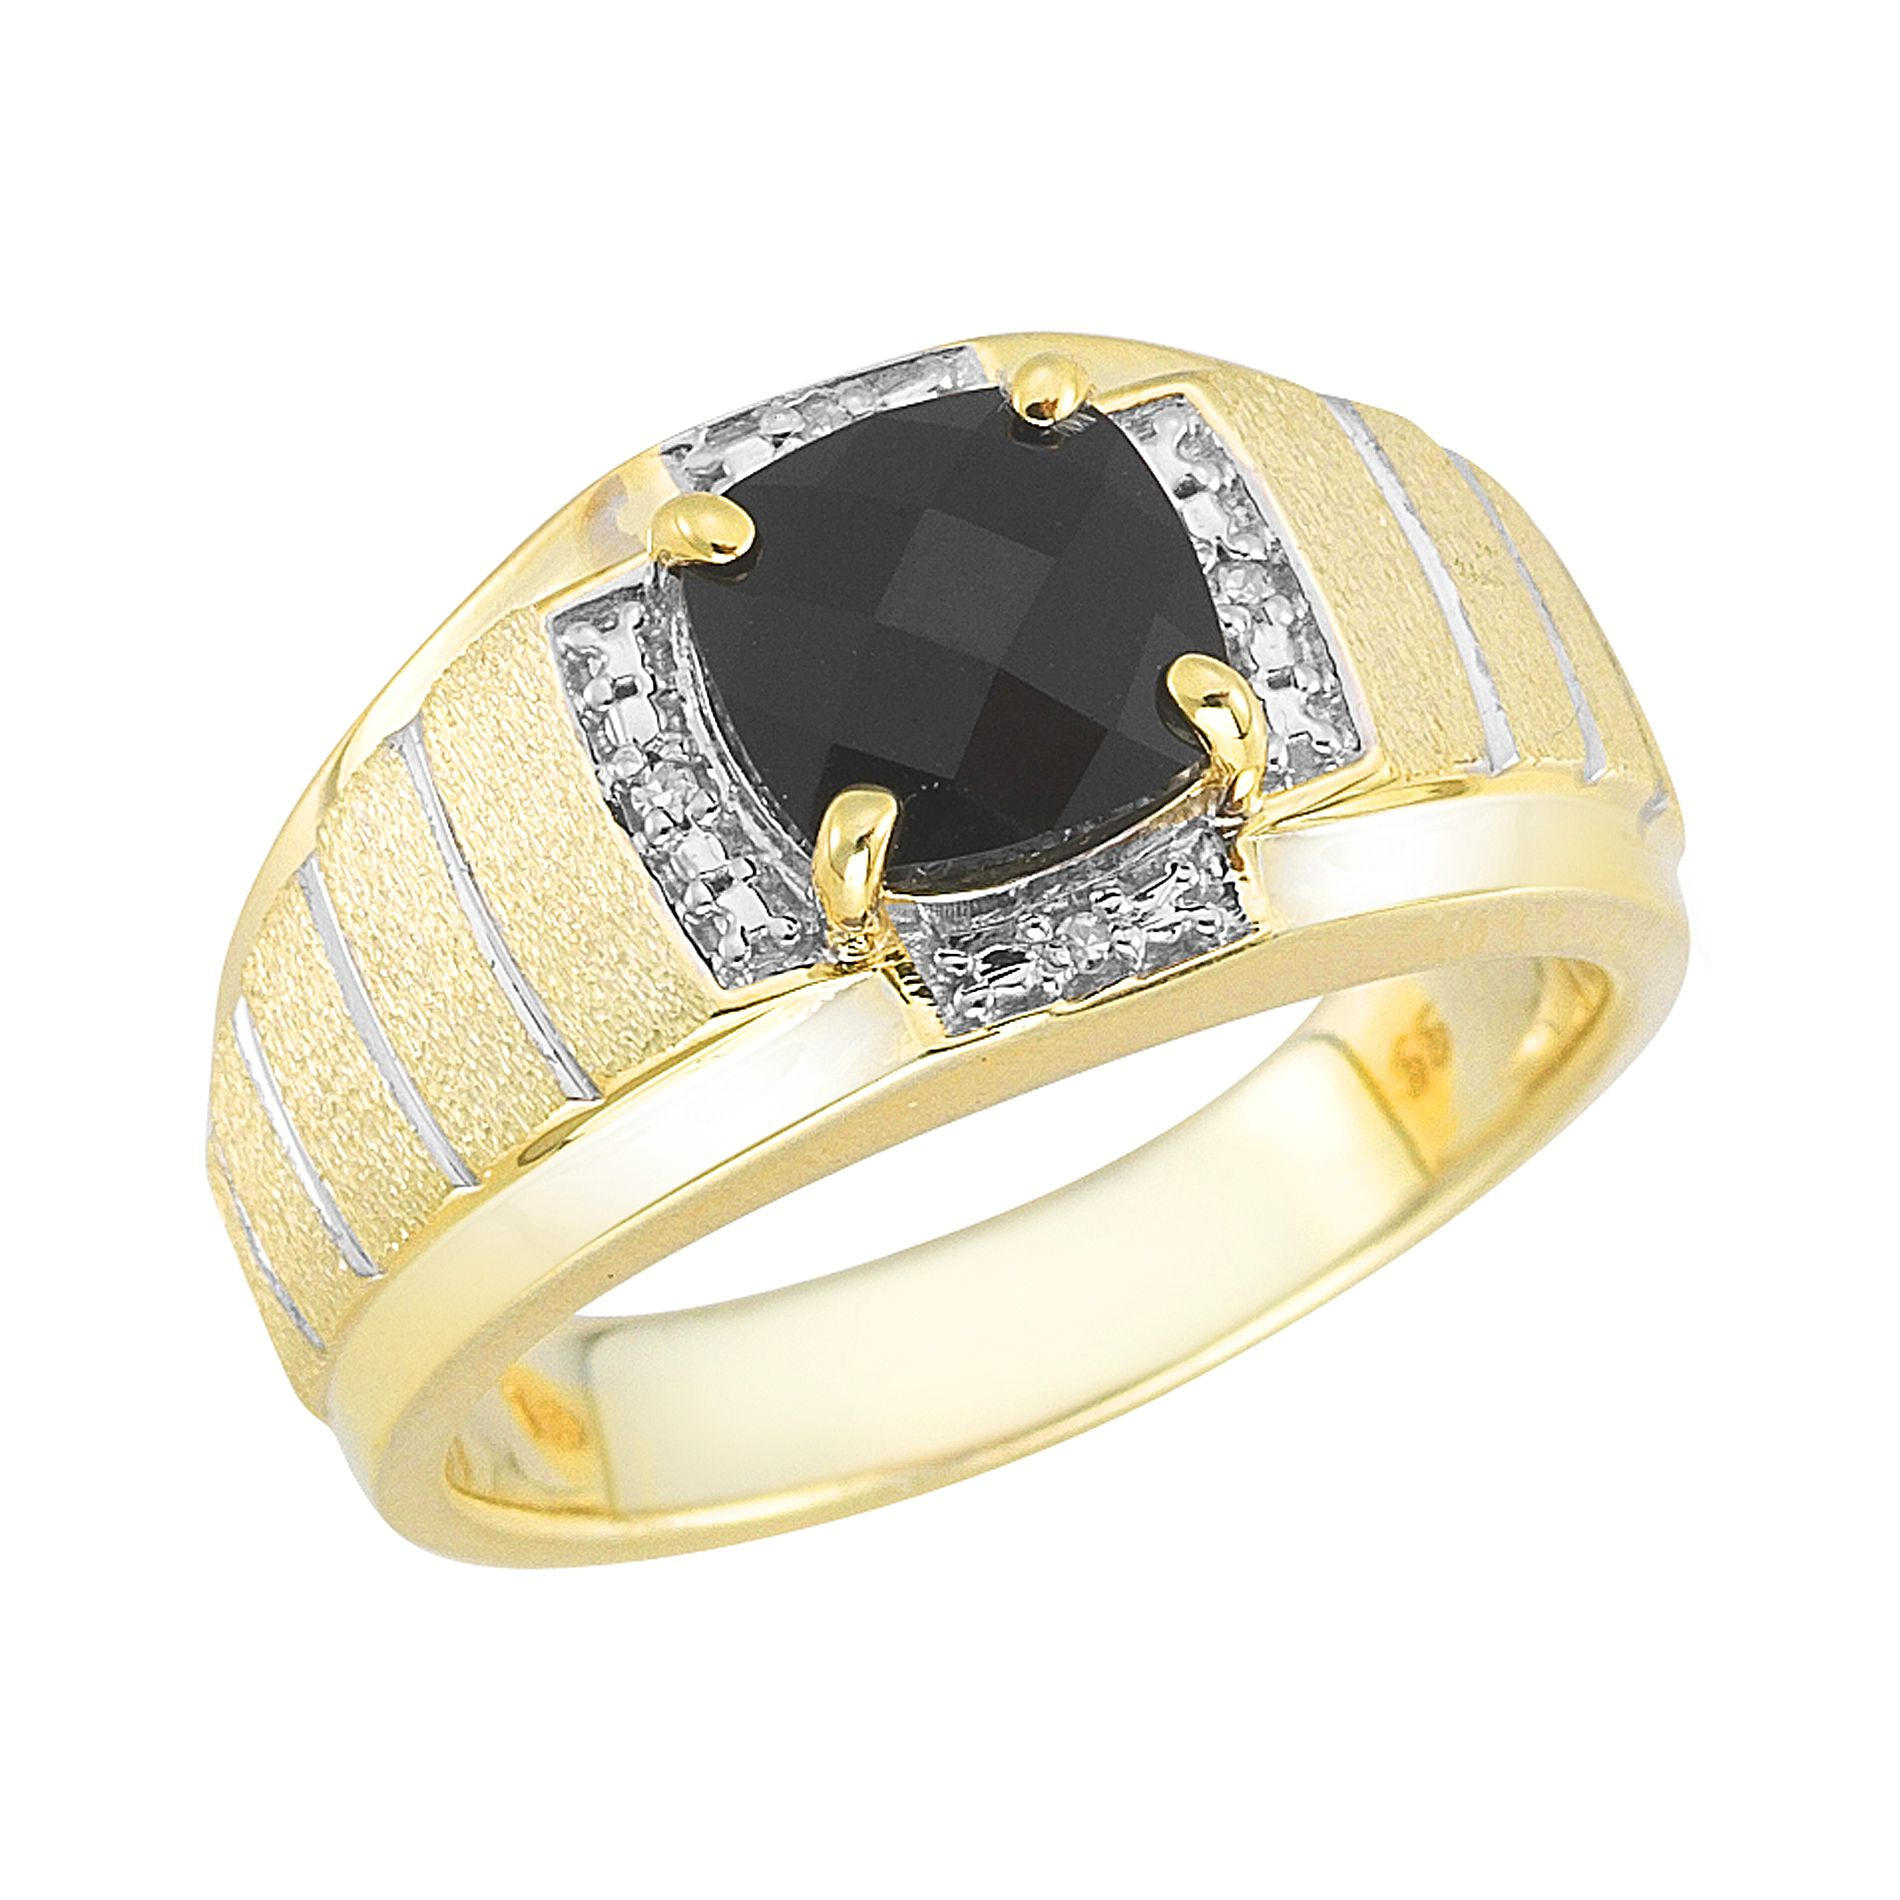 18K Gold Over Sterling Silver Onyx and Diamond Men's Ring